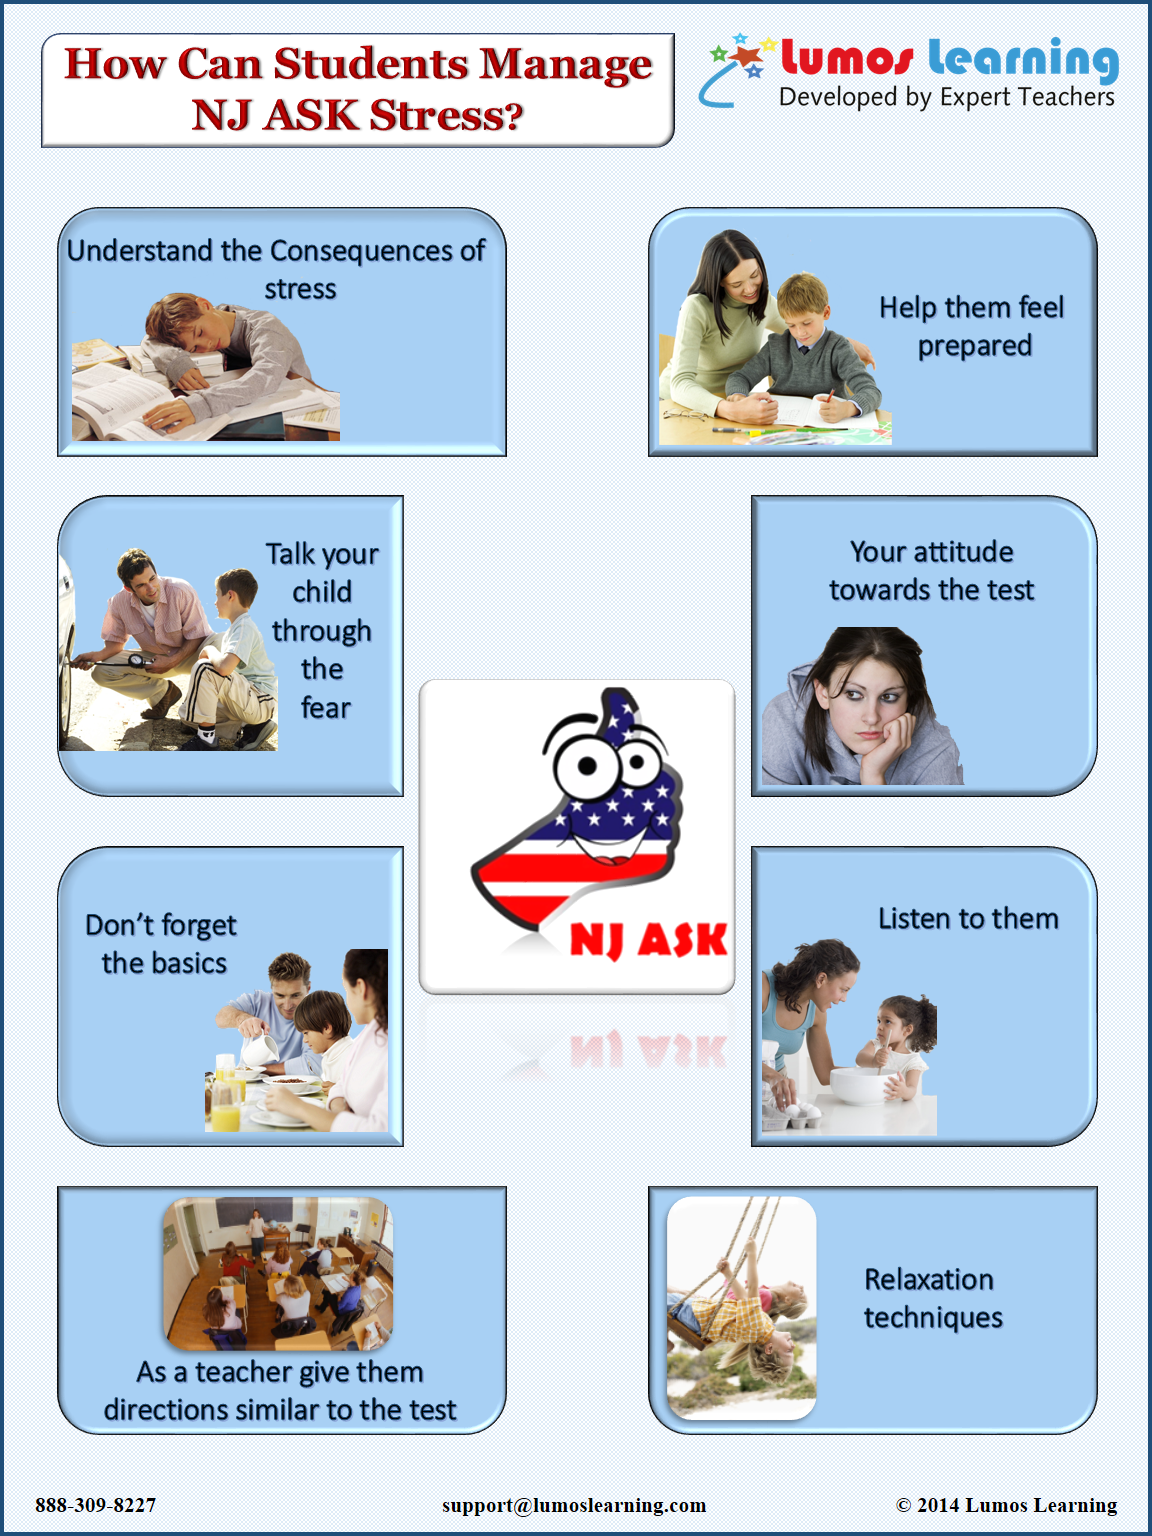 How students can manage NJ ASK stress